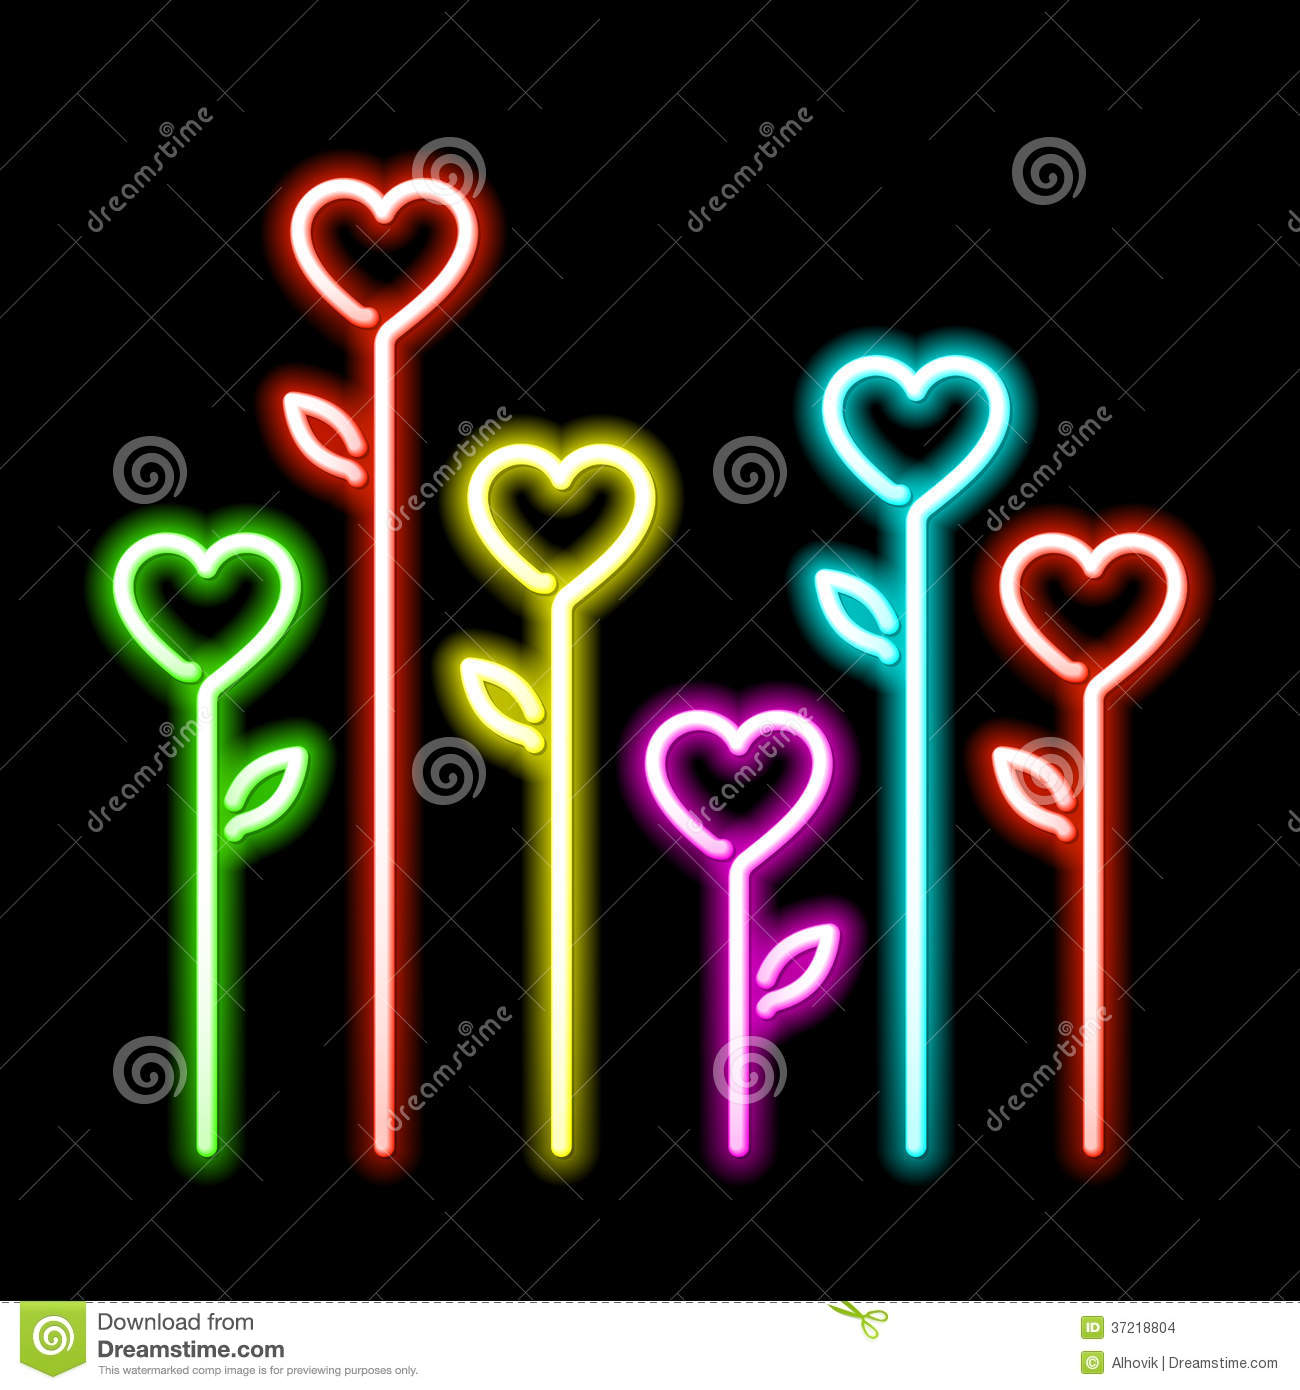 Neon hearts flowers stock vector. Illustration of electric ... Laptop Vector Illustration